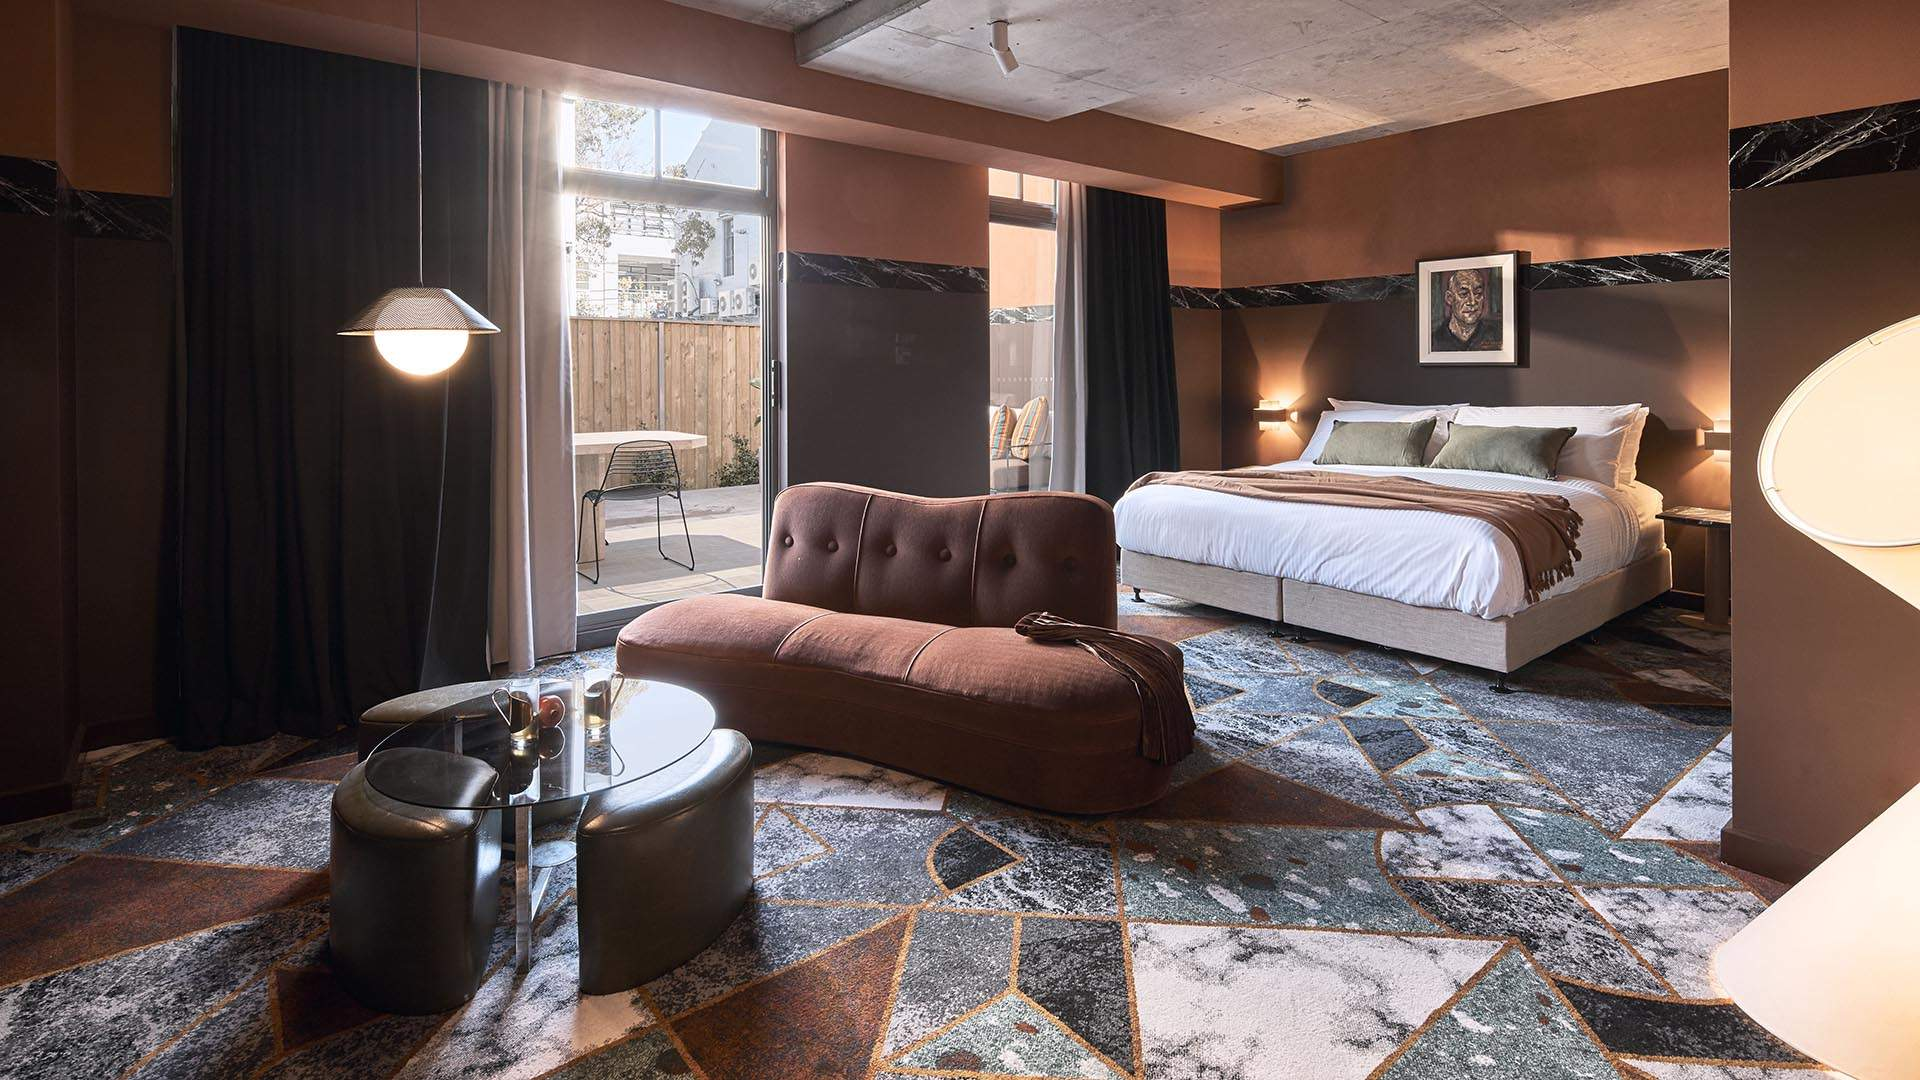 The Most Luxurious Boutique Hotels In and Around Sydney